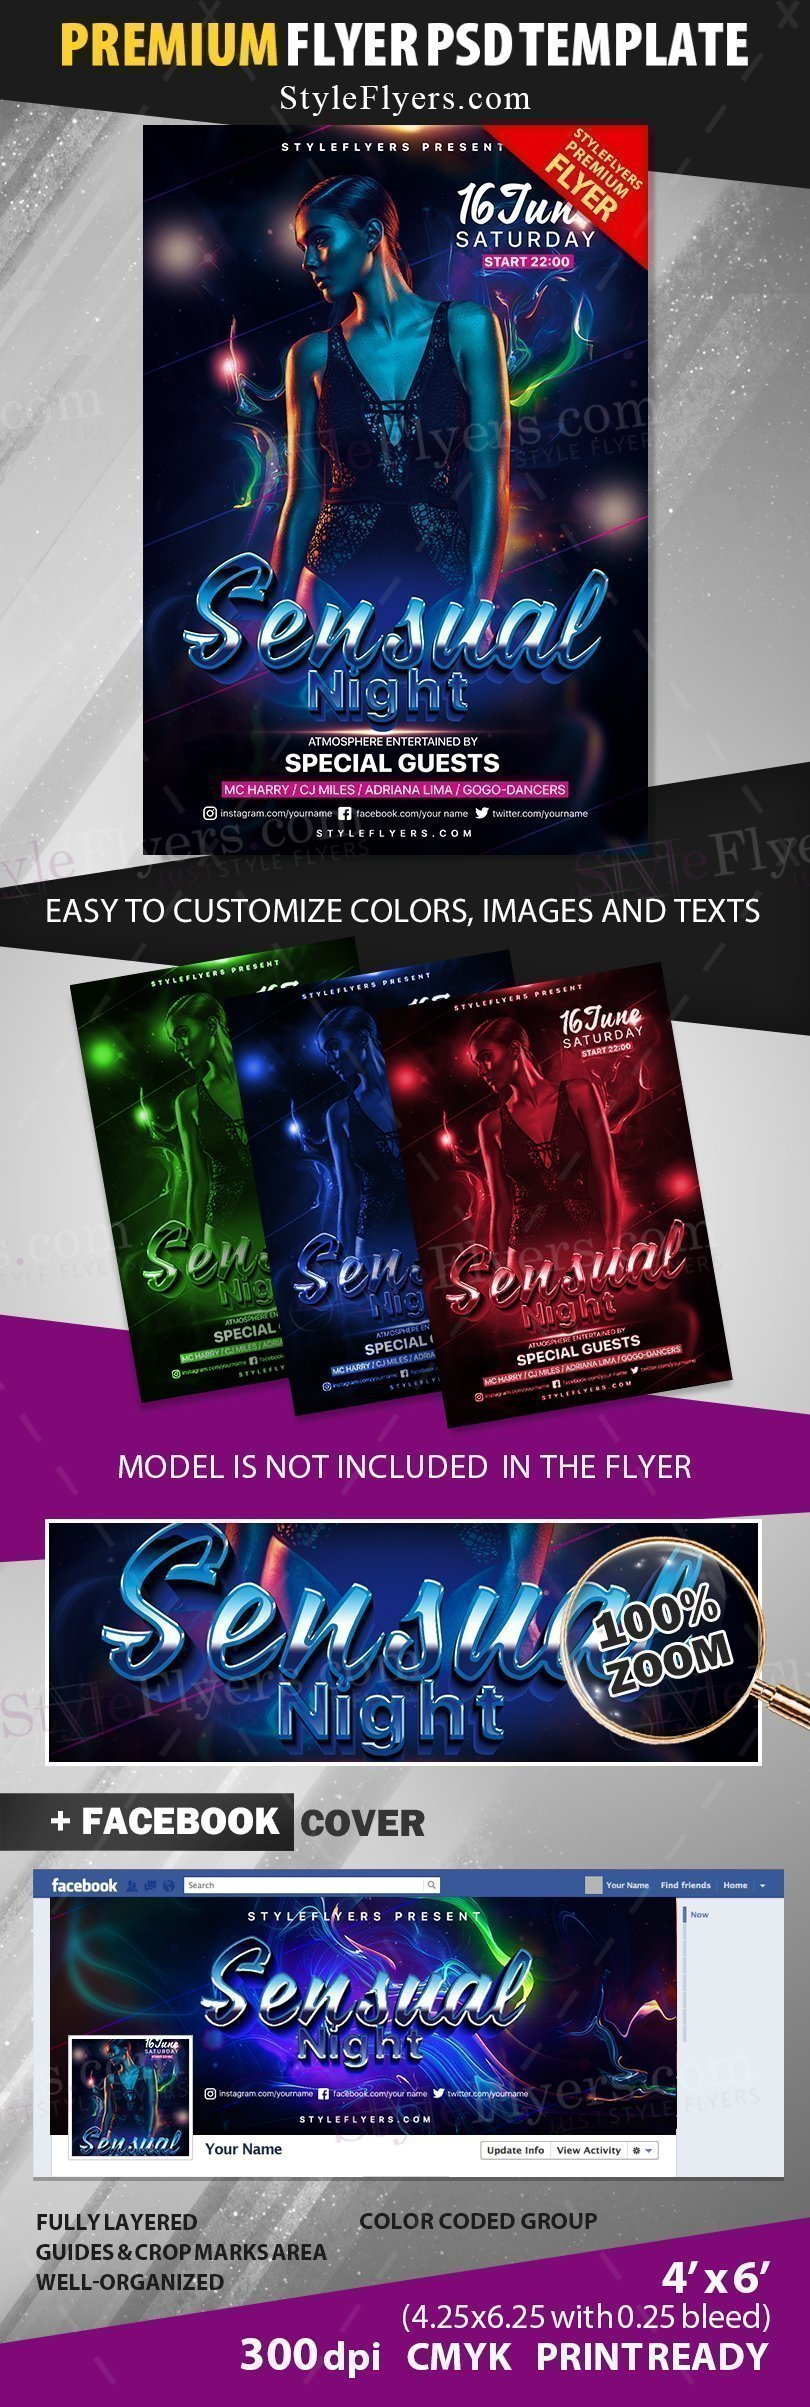 preview_Sensual Night_psd_flyer